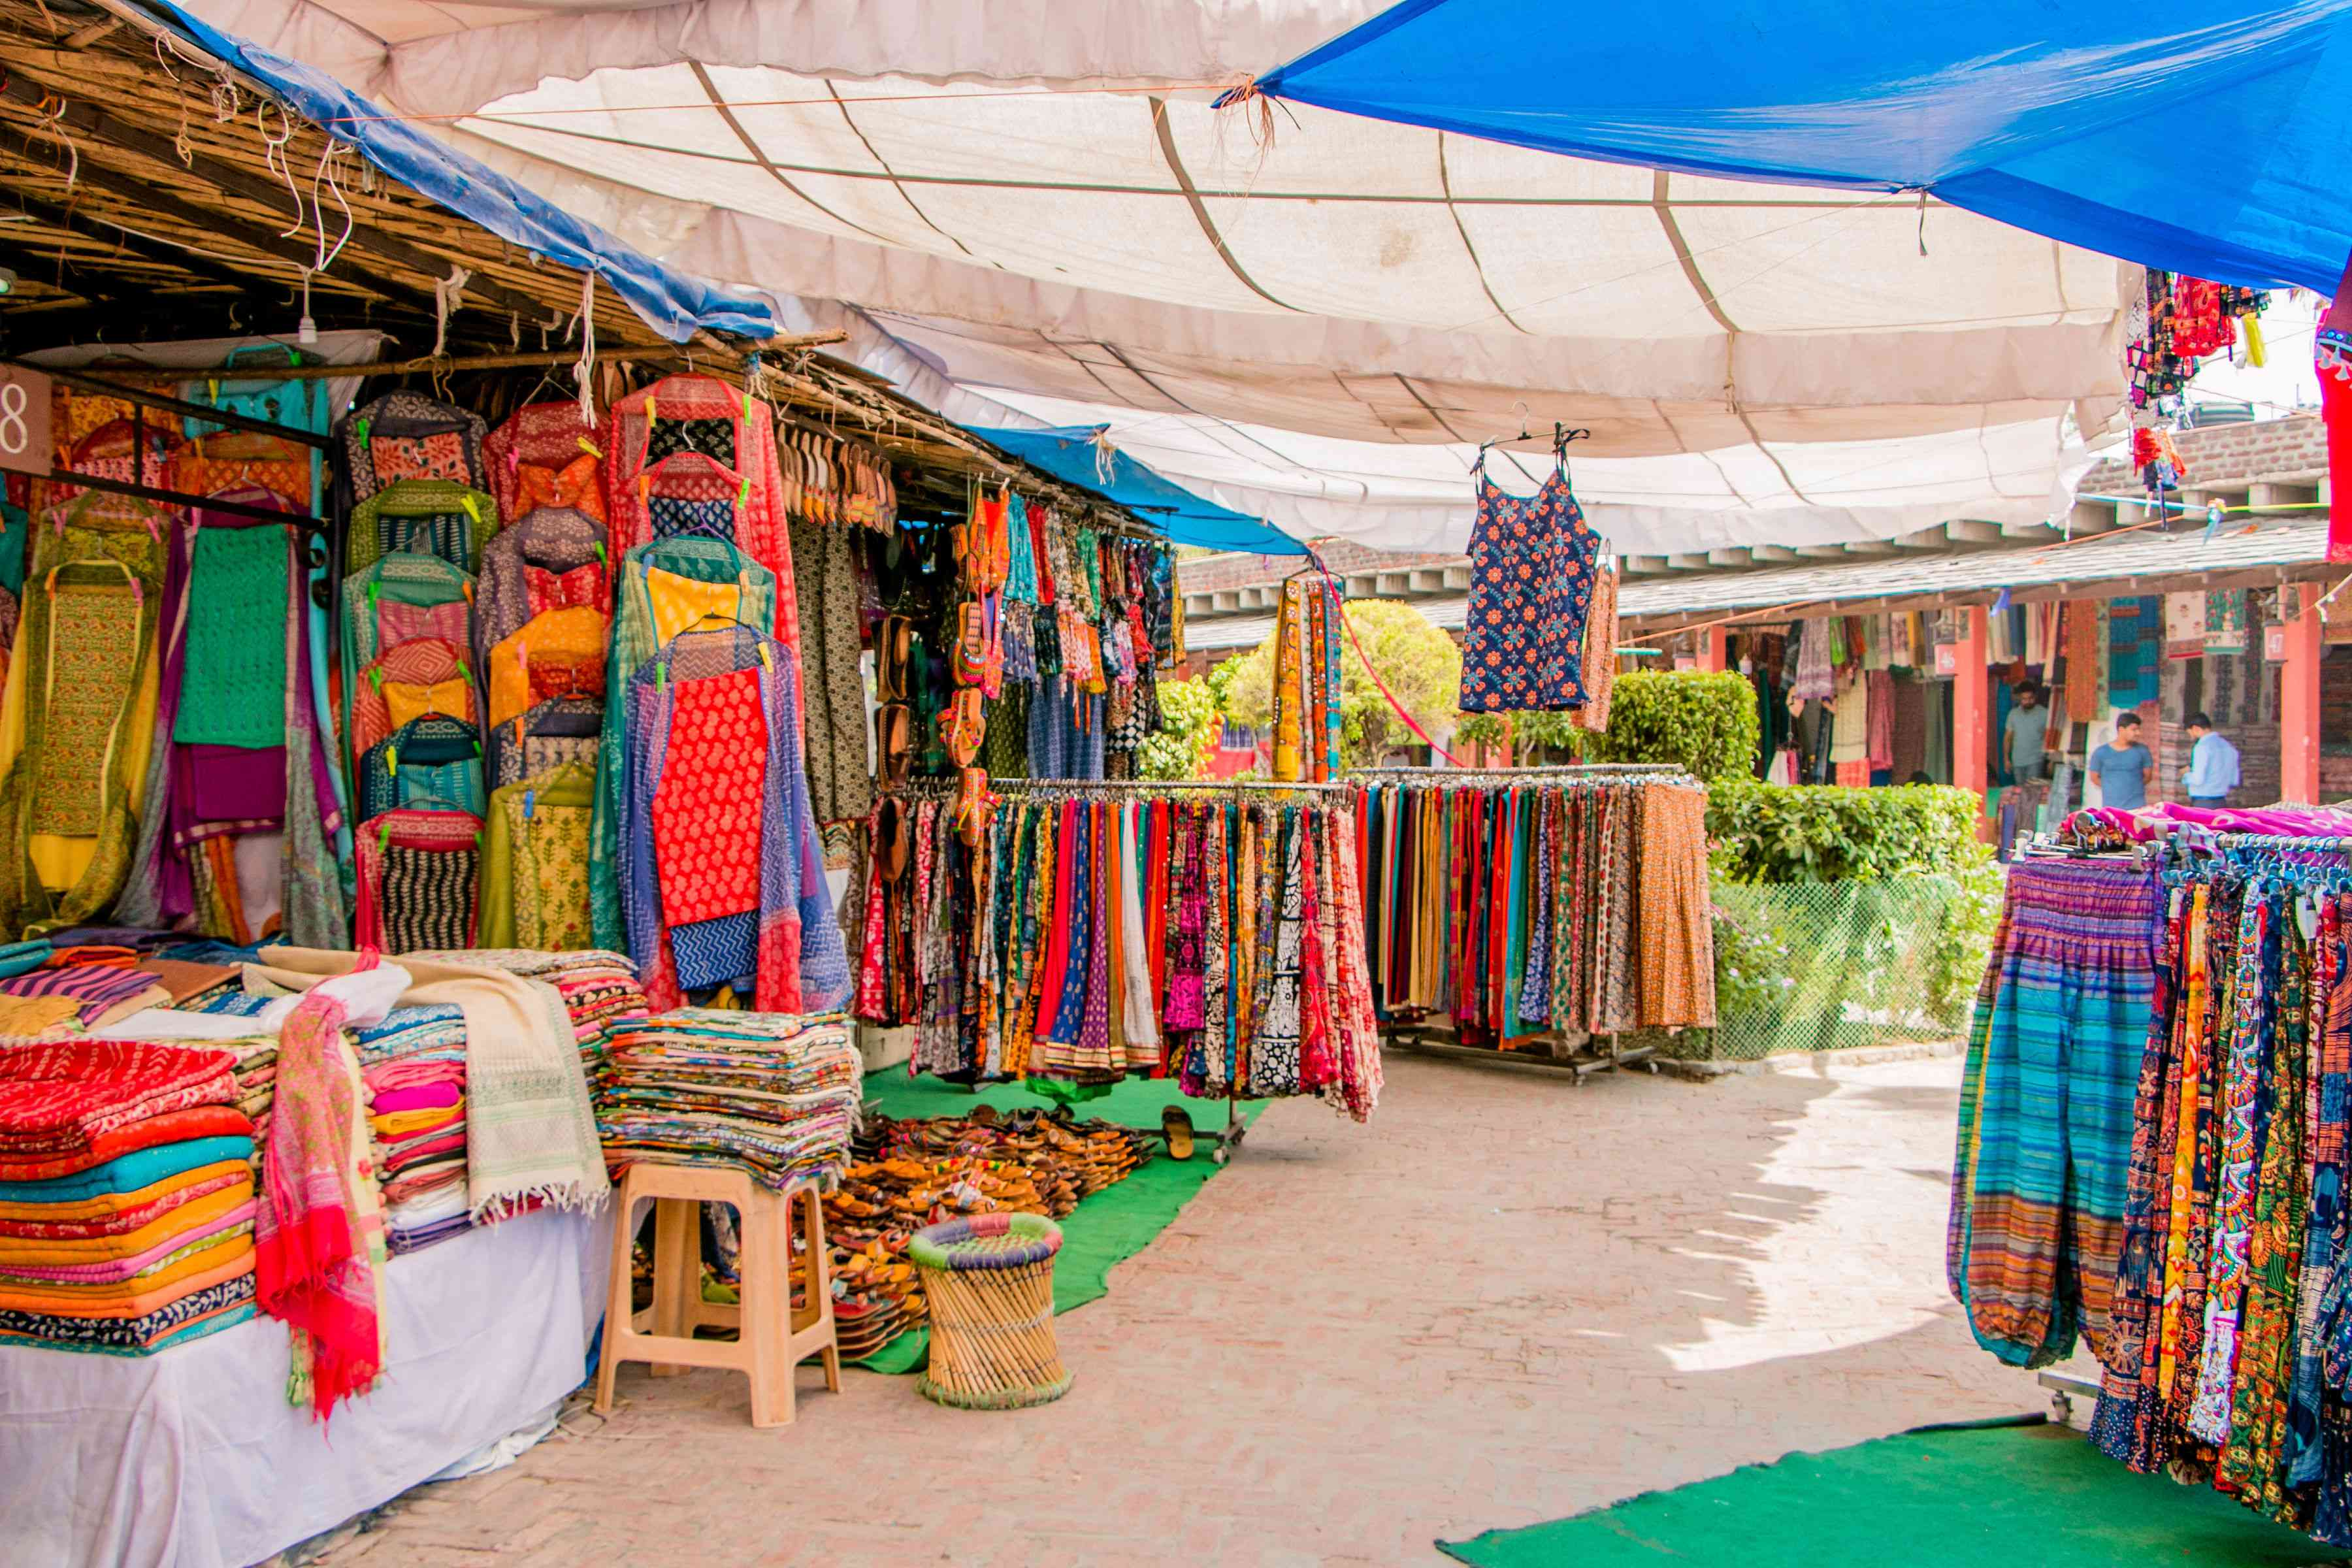 Colorful clothing being sold at Dilli Haat